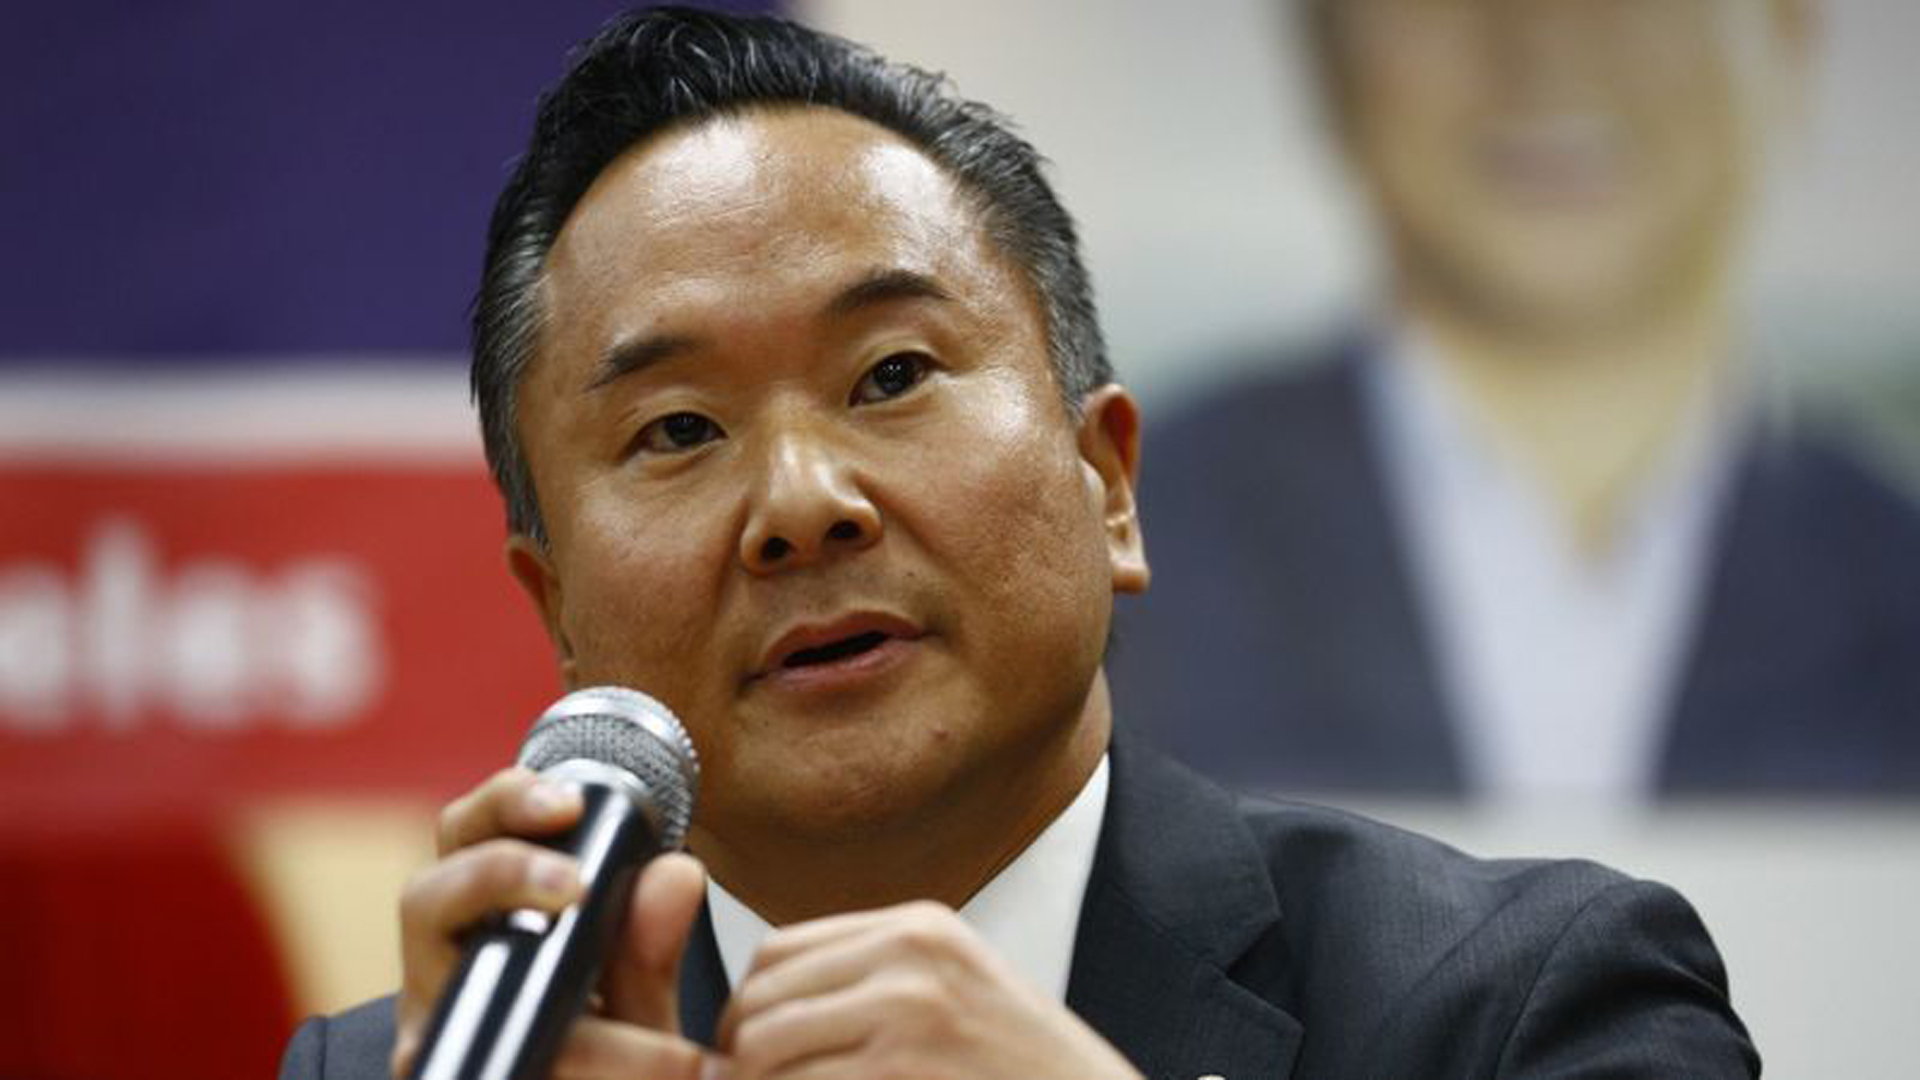 City Council District 12 candidate John Lee participates in a community forum hosted by the Korean American Federation of Los Angeles in March. (Credit: Kent Nishimura / Los Angeles Times)